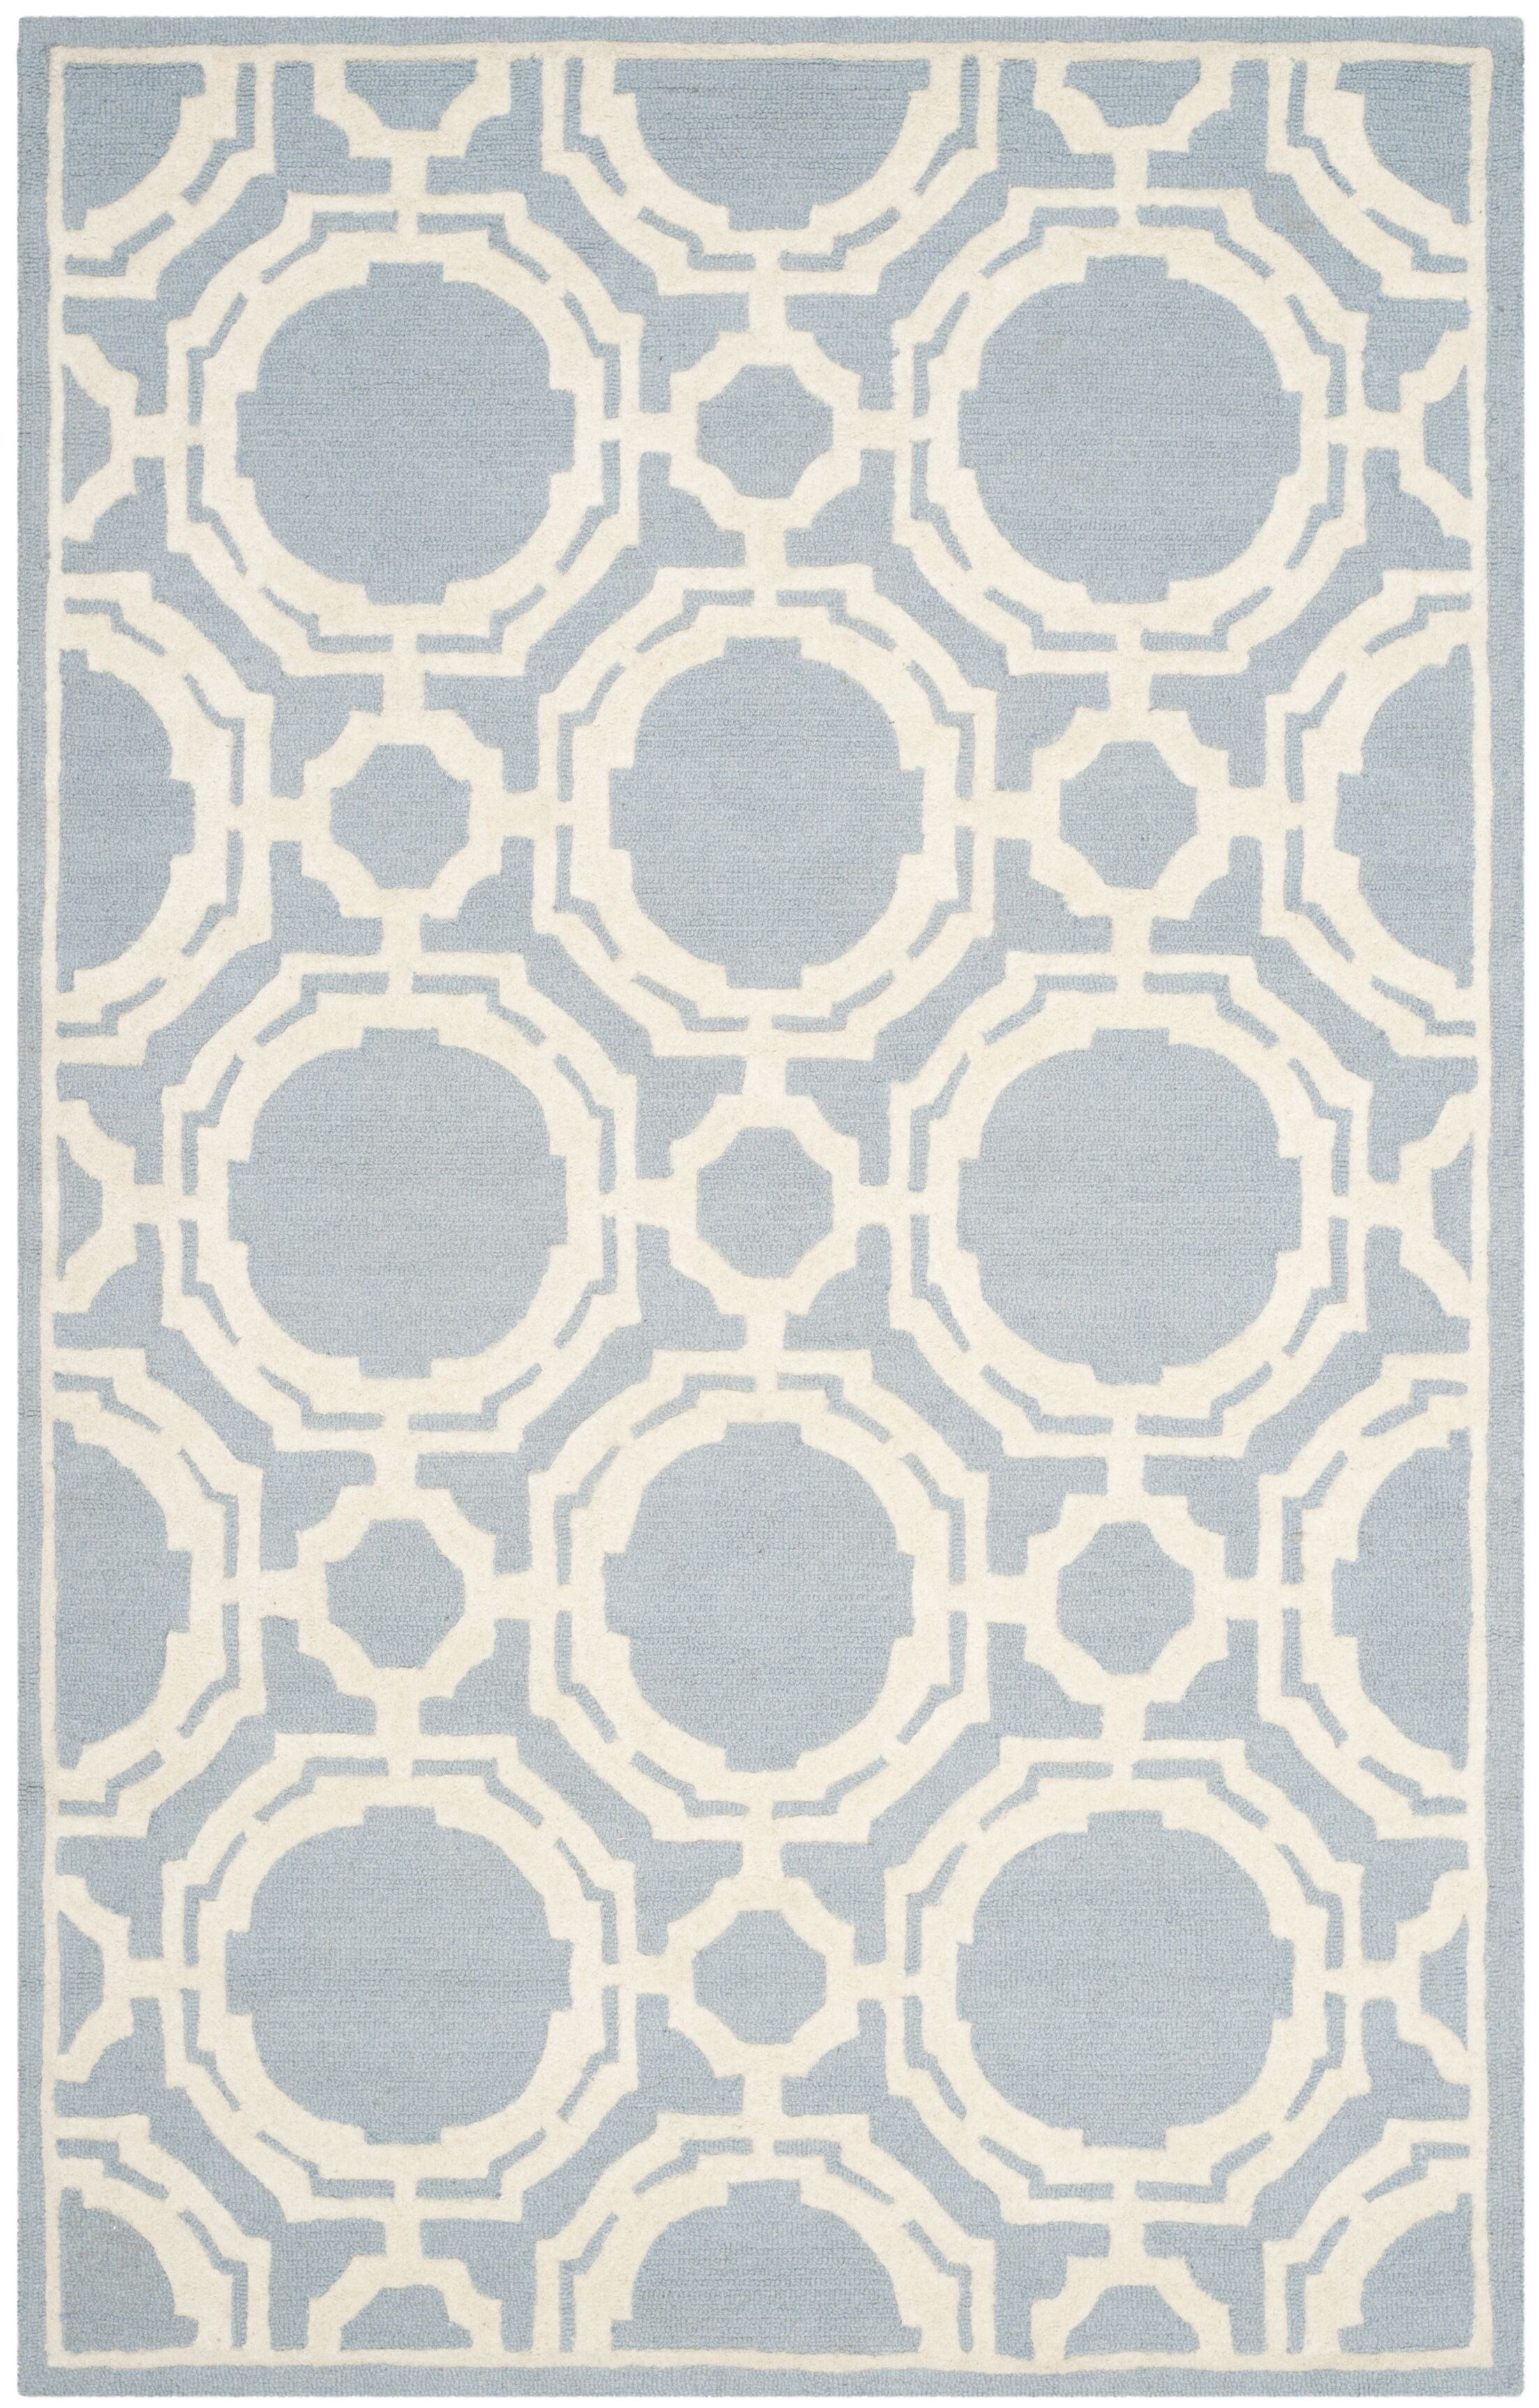 Blakemore Hand-Tufted Blue/Ivory Area Rug Rug Size: Rectangle 5' x 8'